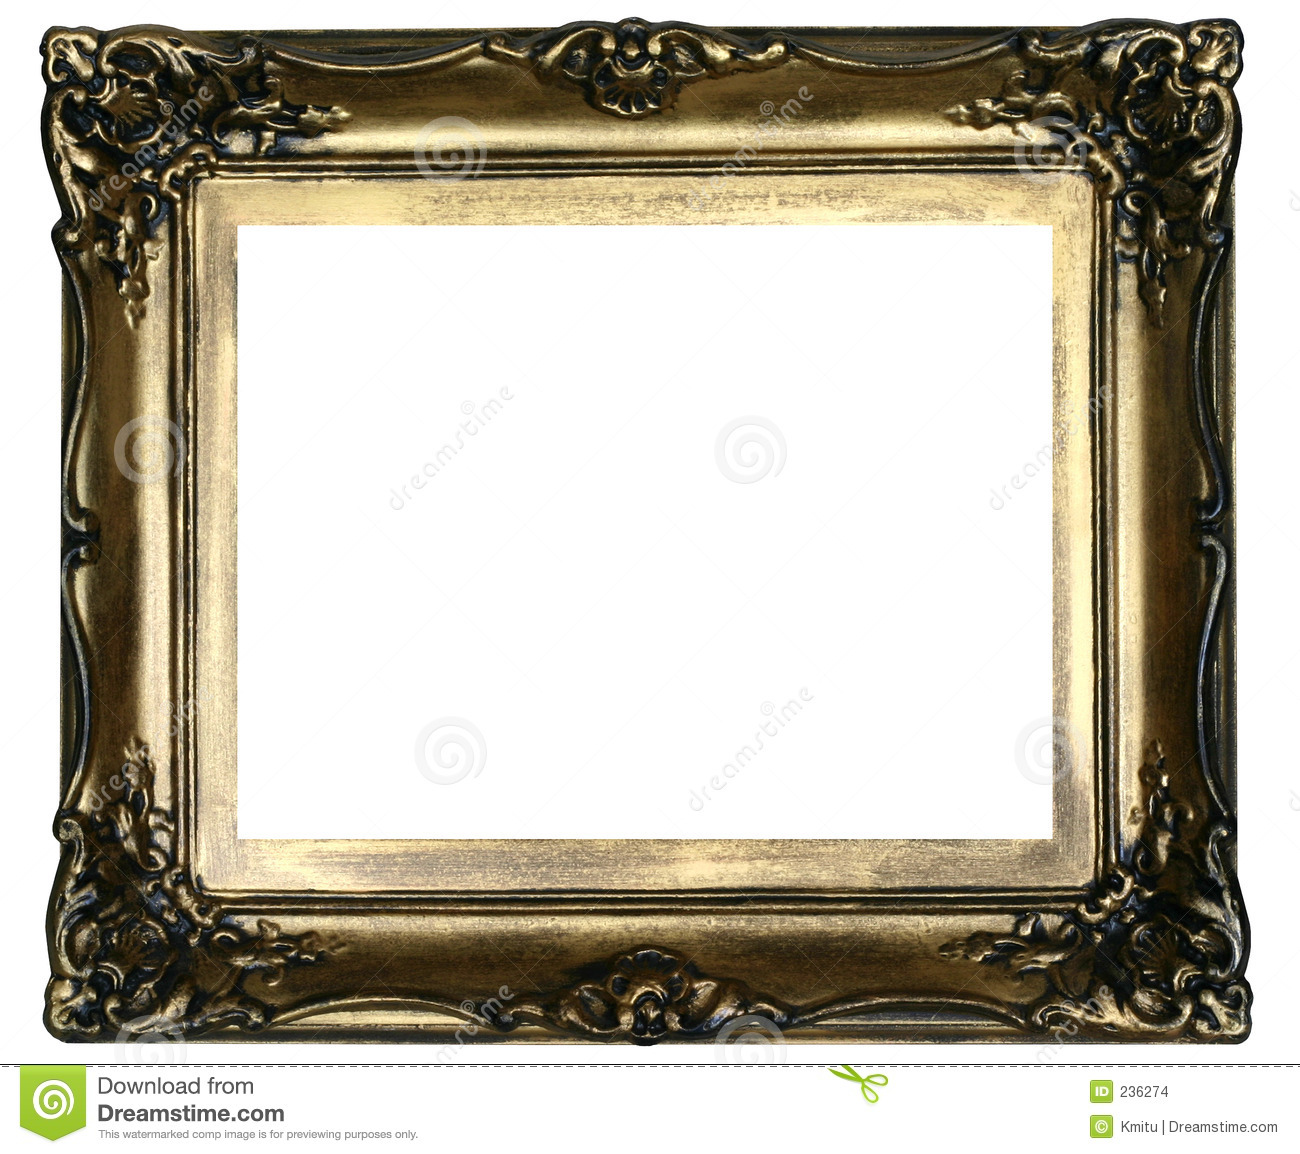 Antique frame #2 stock photo. Image of band, decorated - 236274